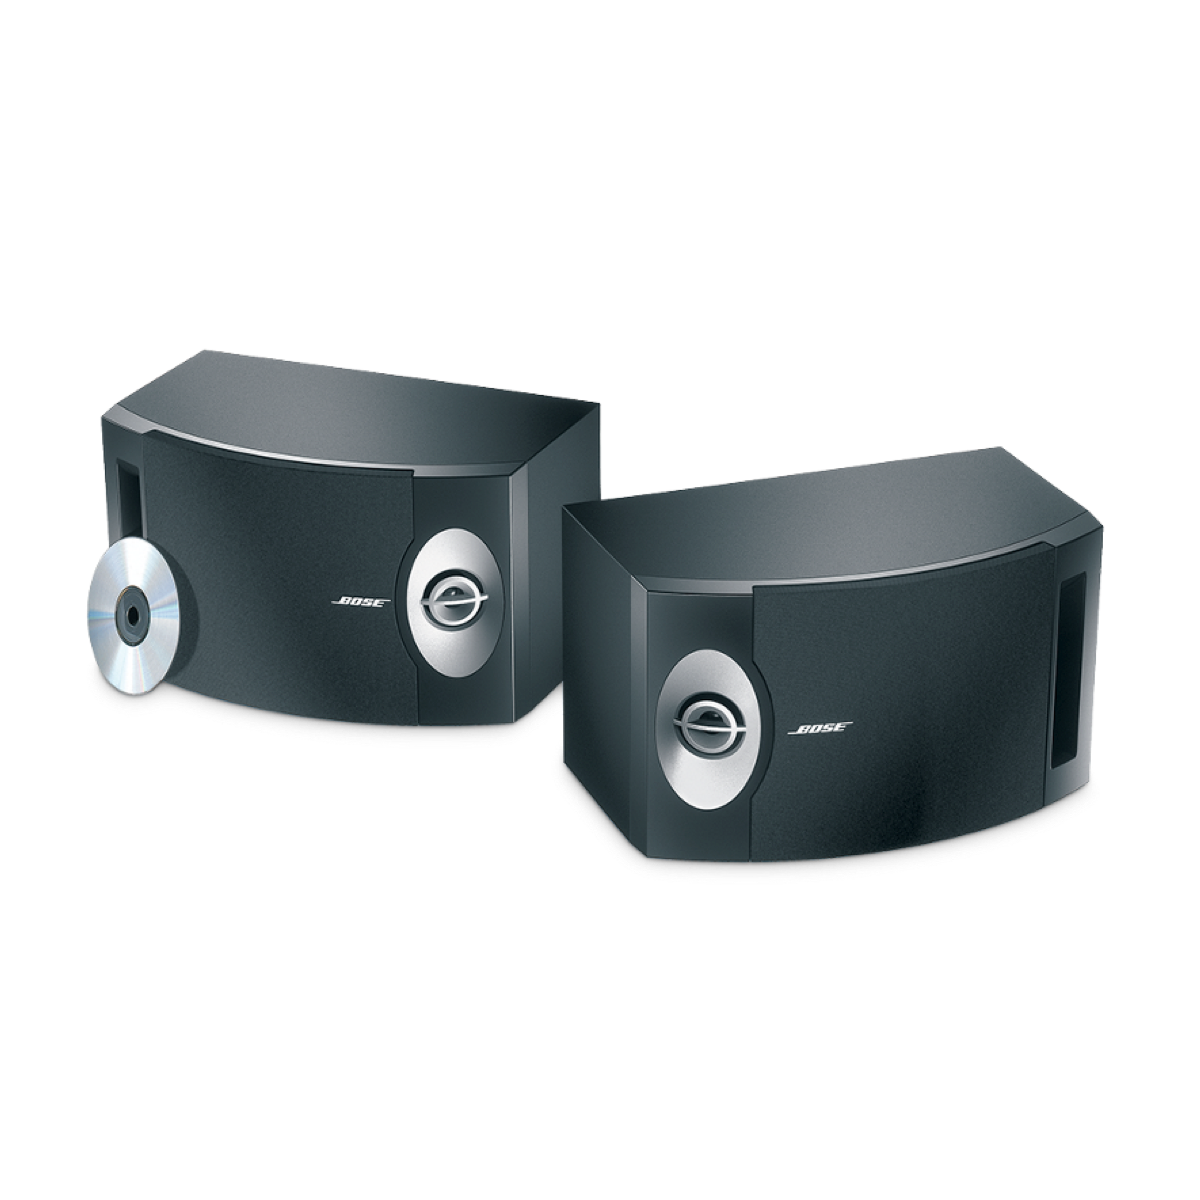 Bose 201 - Direct/Reflecting Speaker System - AVStore.in